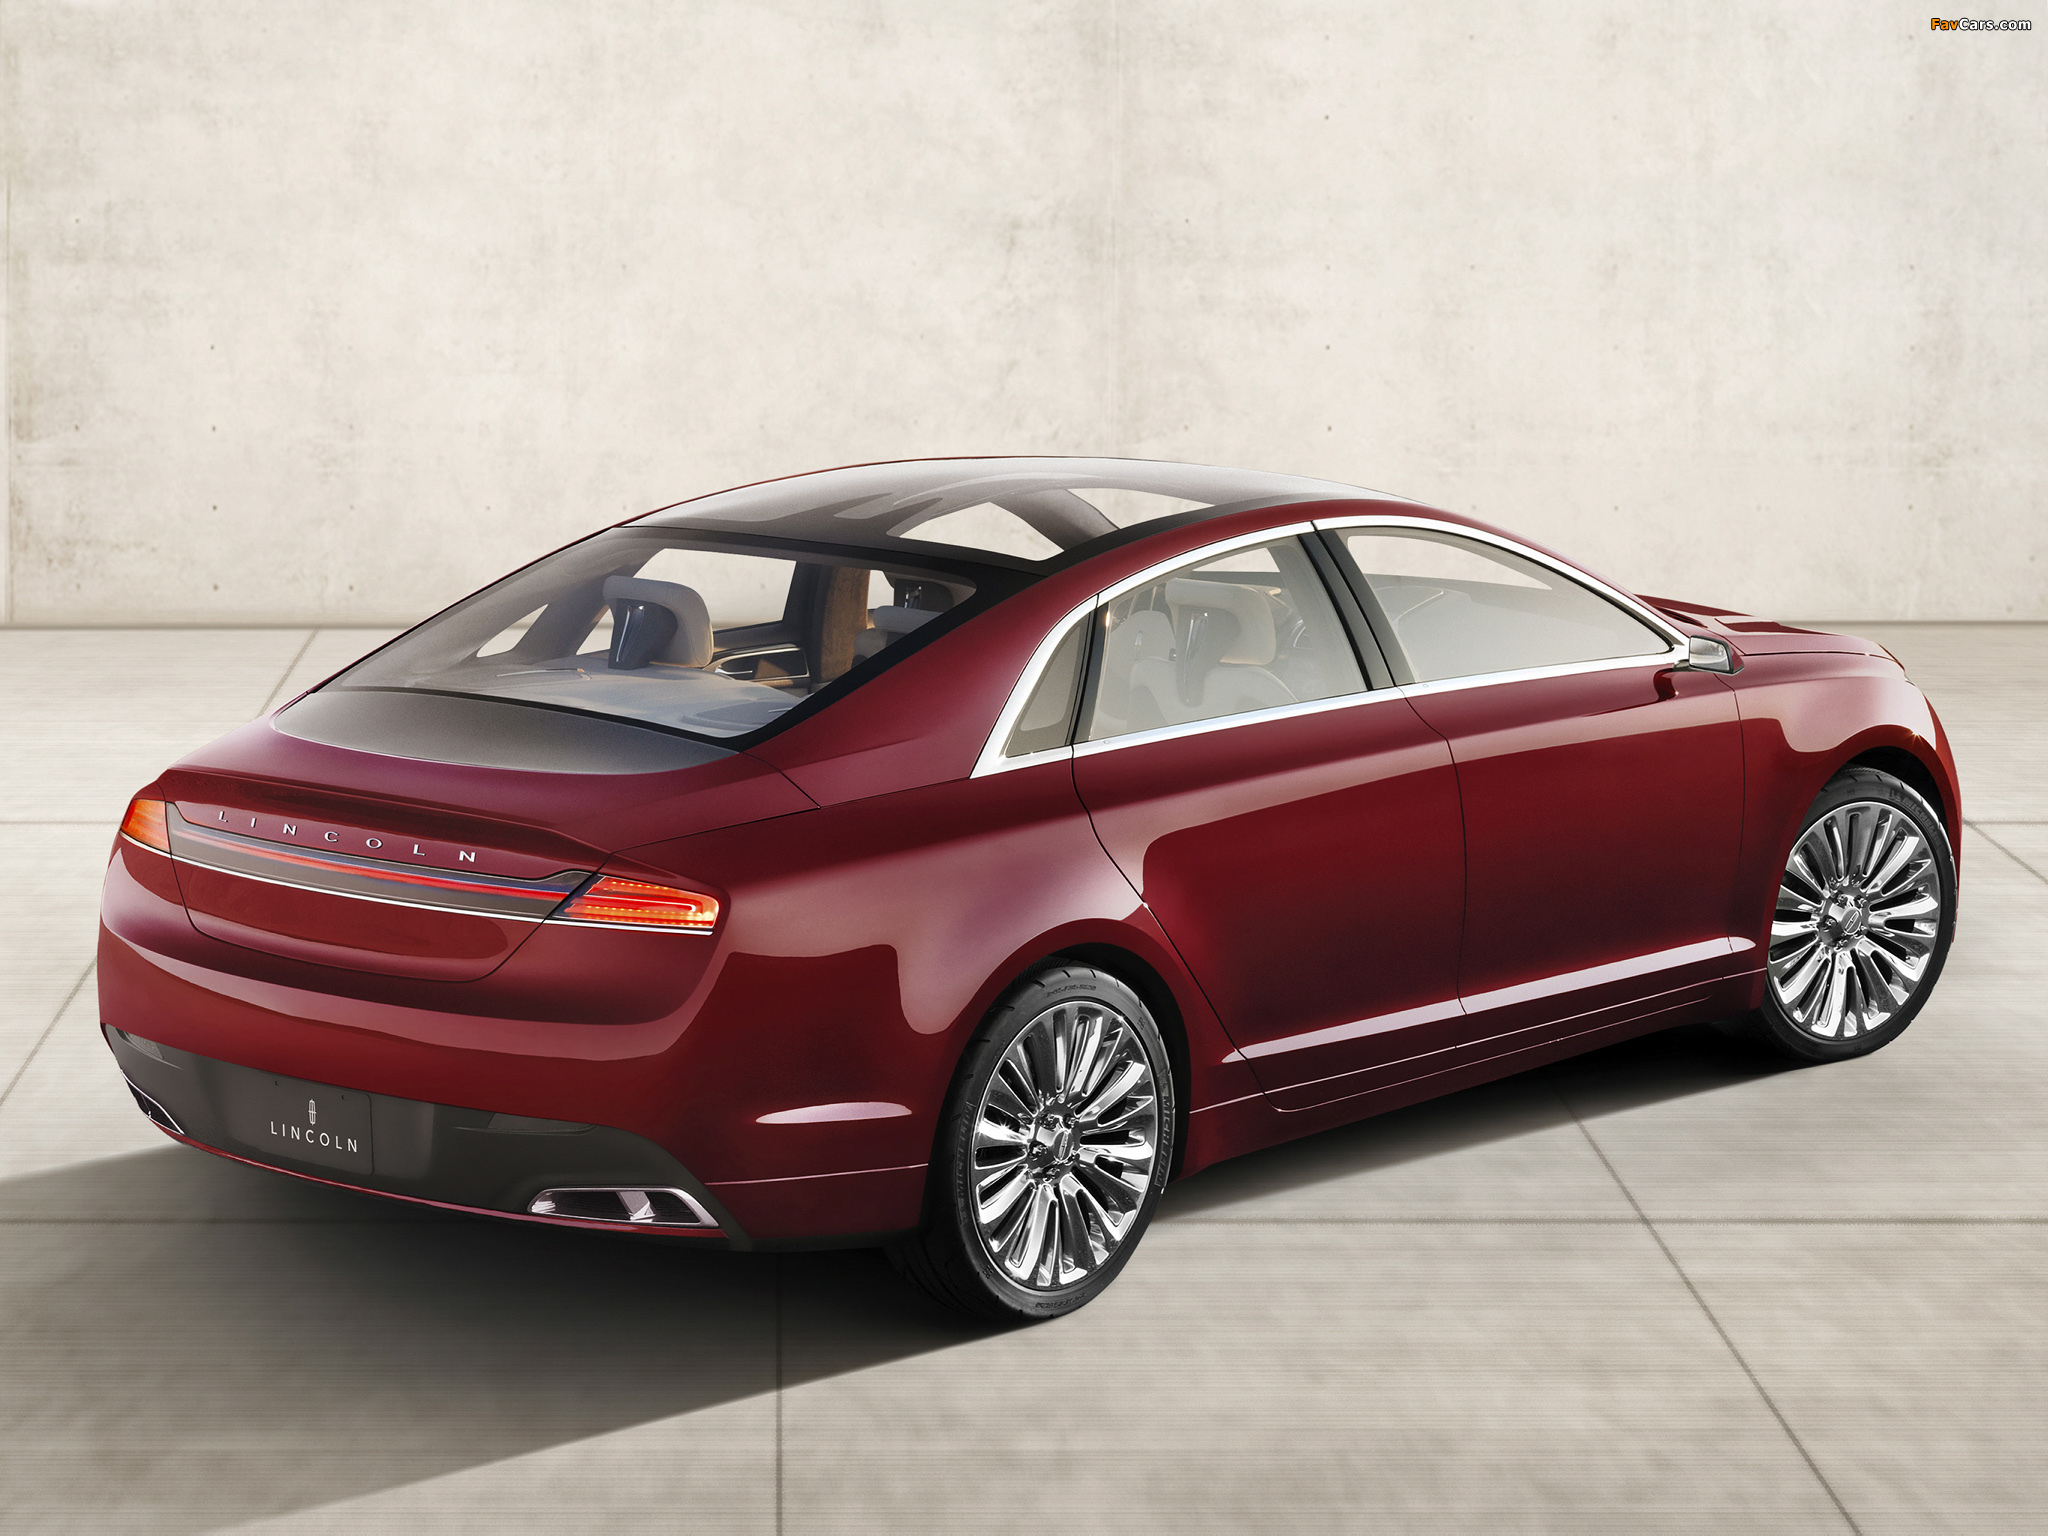 Lincoln MKZ Concept 2012 wallpapers (2048 x 1536)